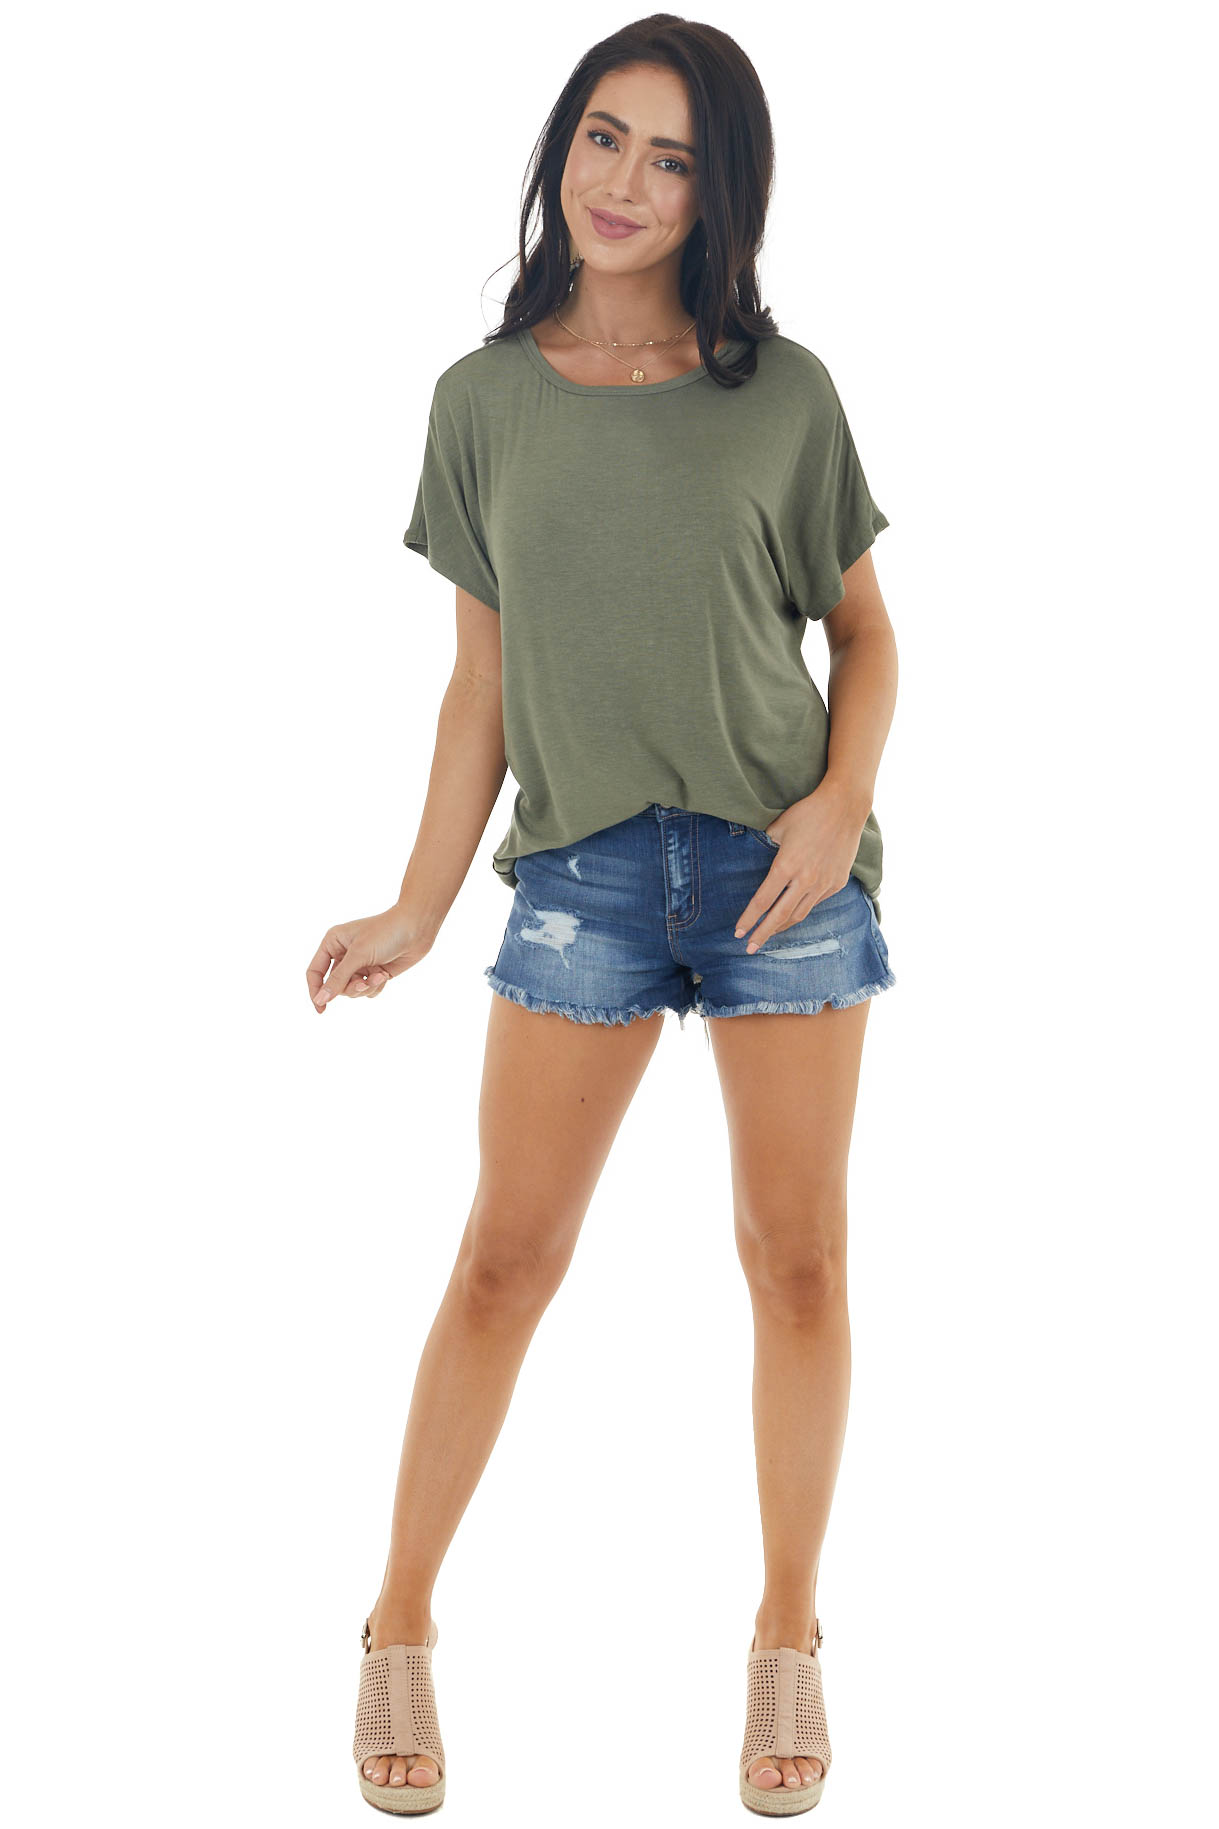 Vintage Olive Short Sleeve Oversized Top with Cut Out Detail